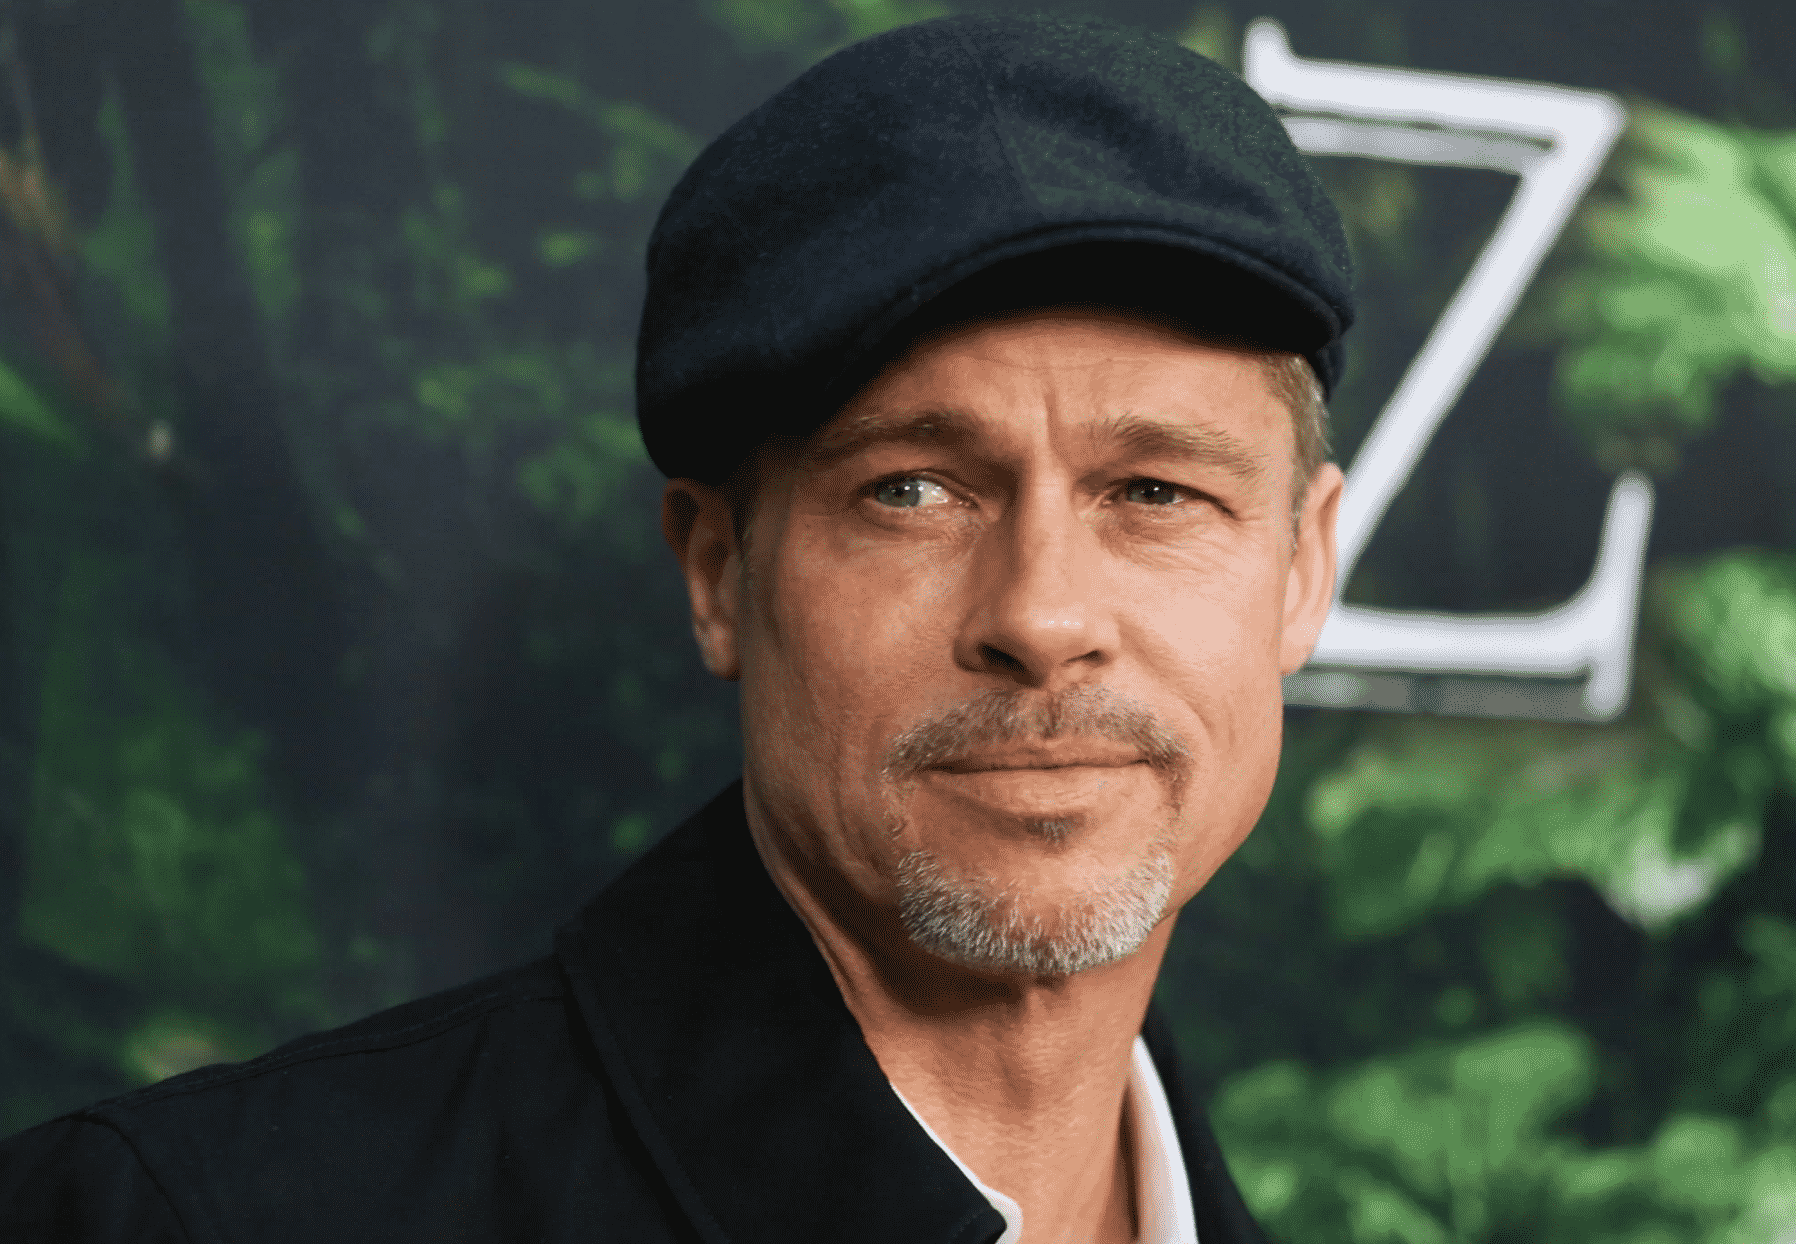 Brad Pitt Sober - Freedom From Addiction